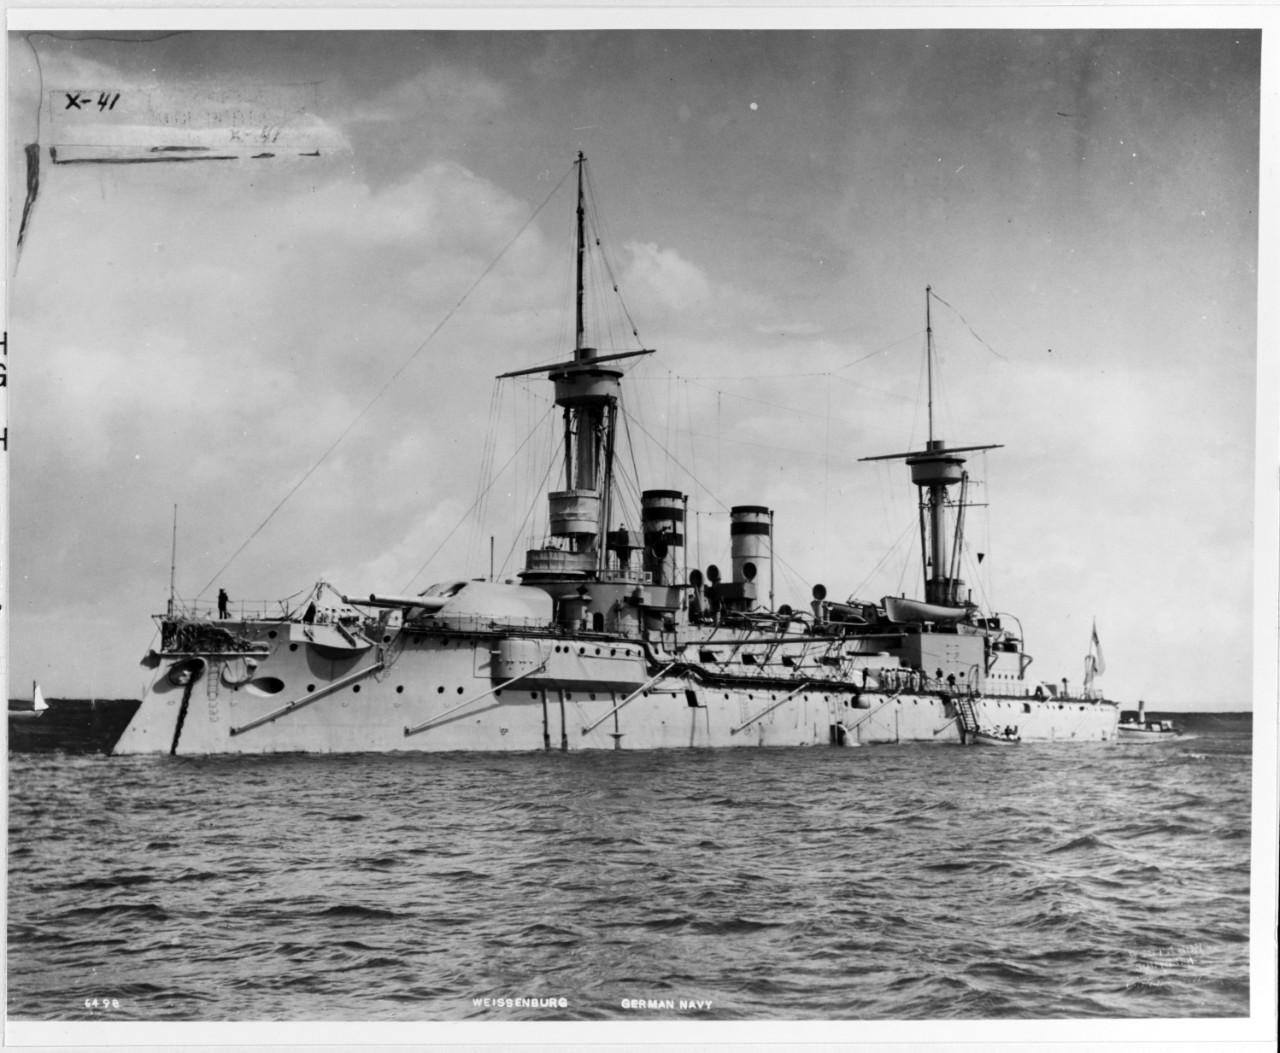 WEISSENBURG (German Battleship, 1891-1938)